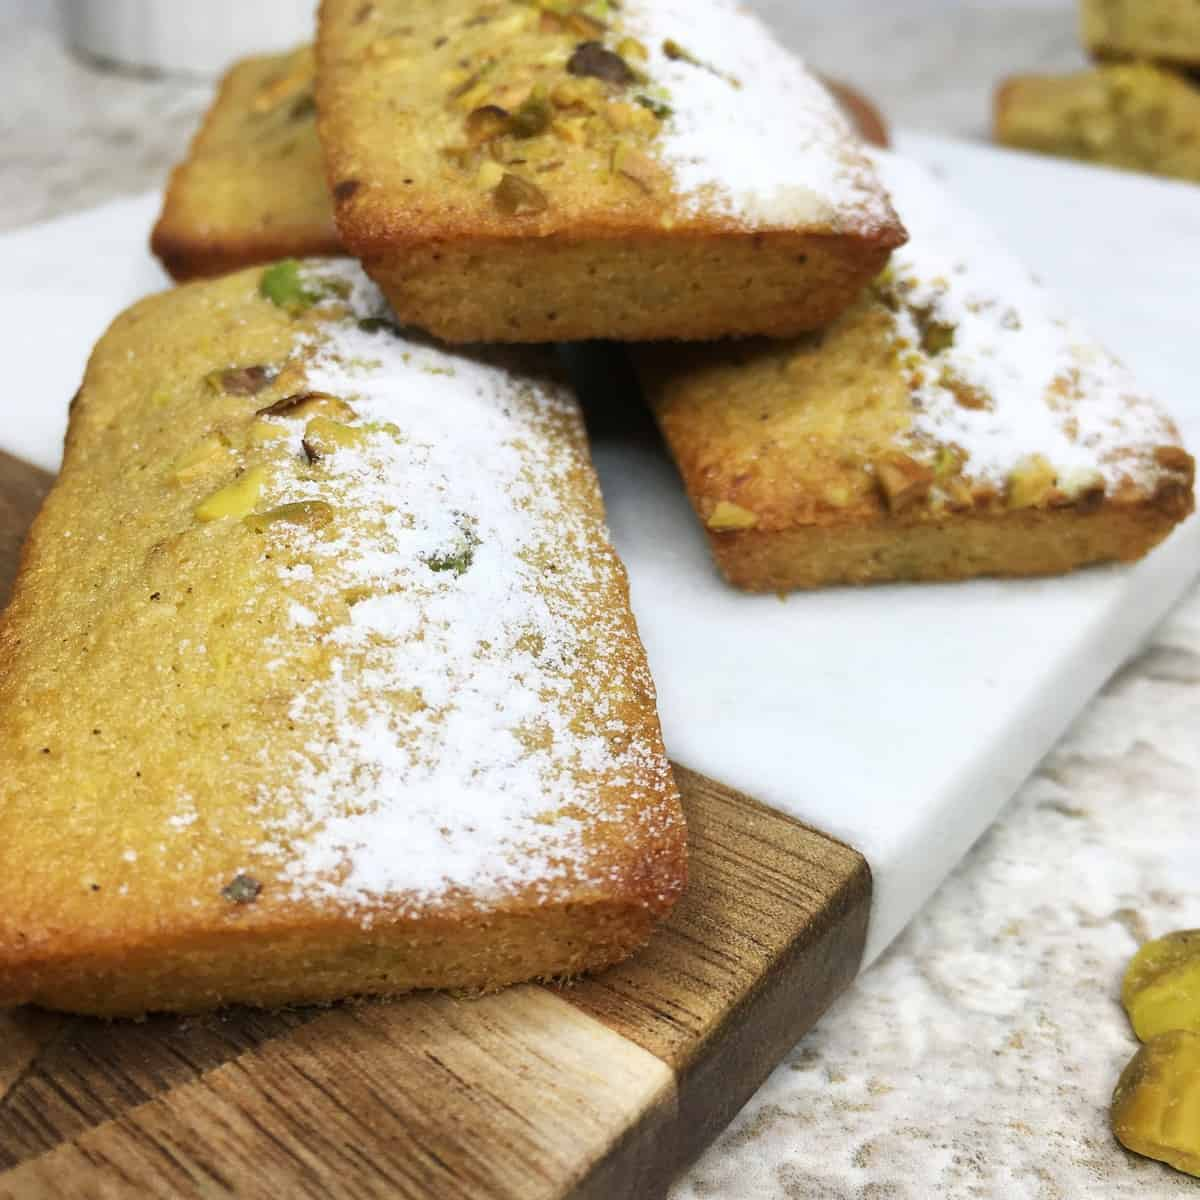 Pistachio financiers sprinkled with icing sugar on a serving board